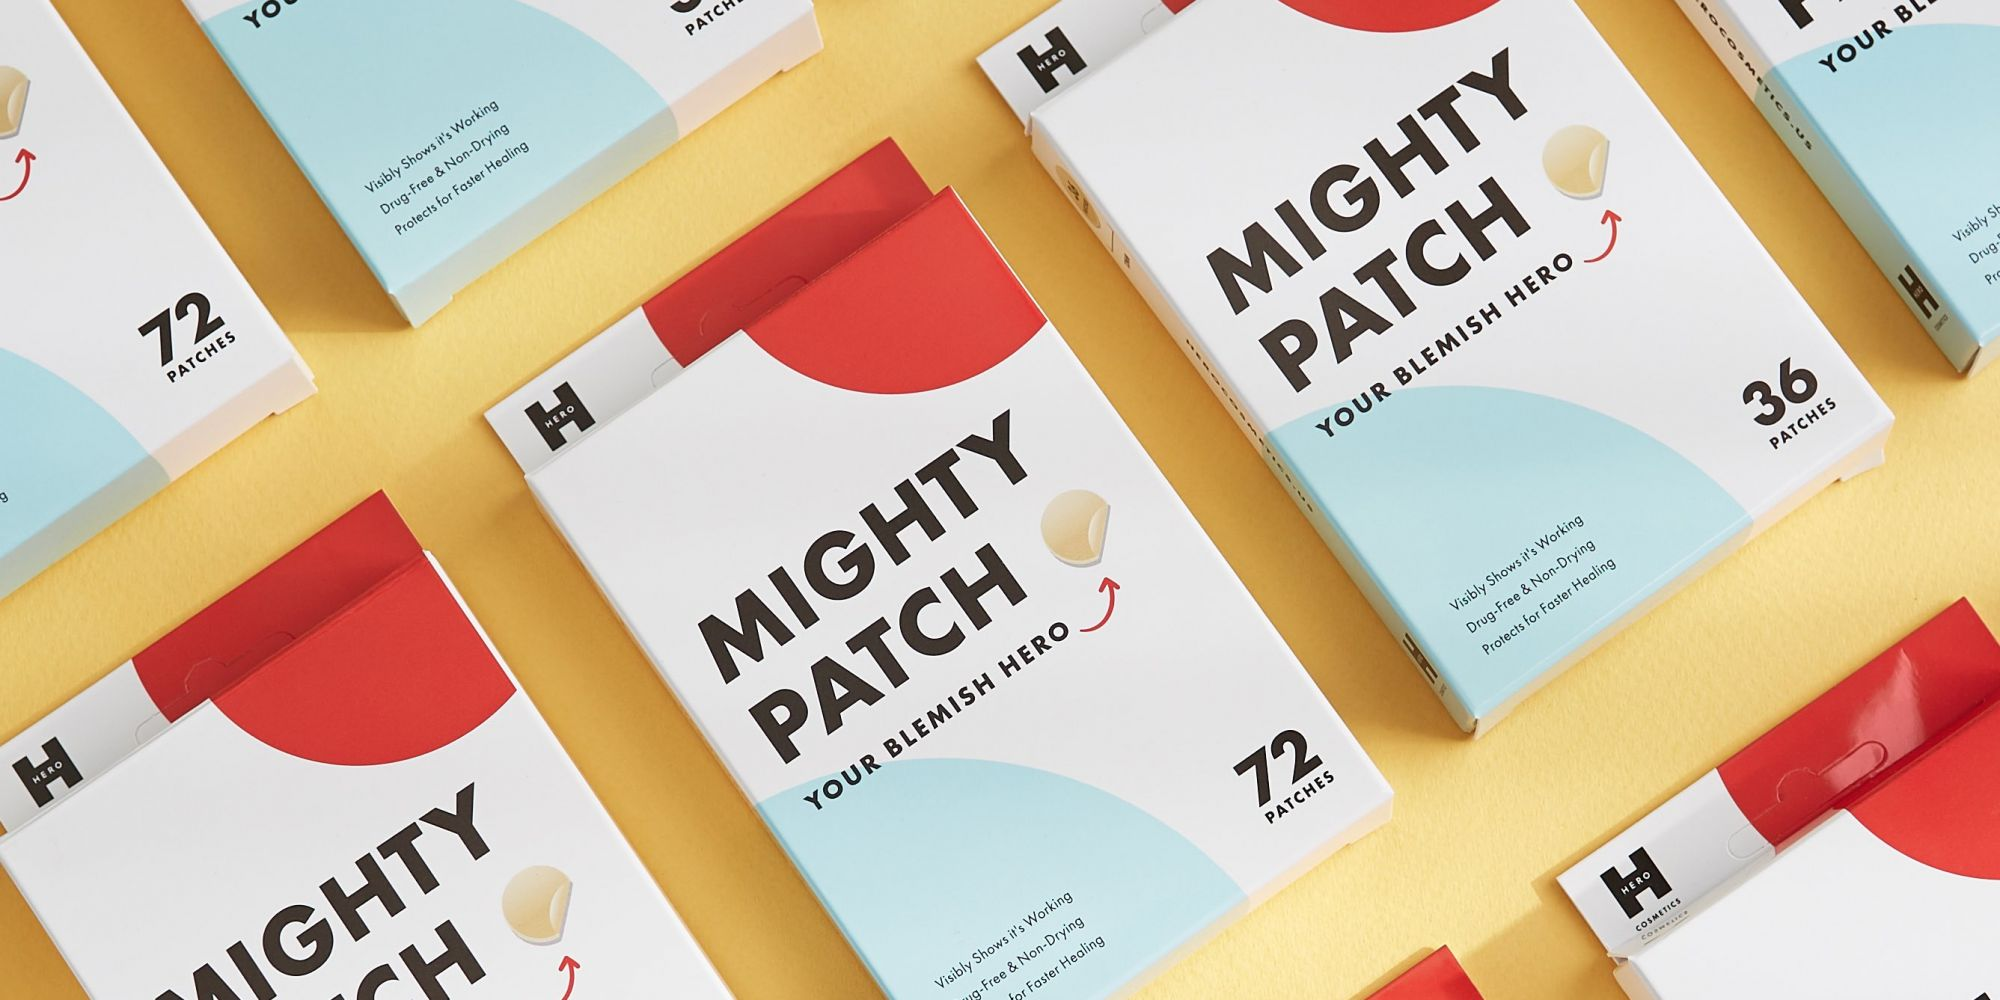 Hero Cosmetics' Mighty Patch Is Fighting Pimples And Winning Over Retail Partners